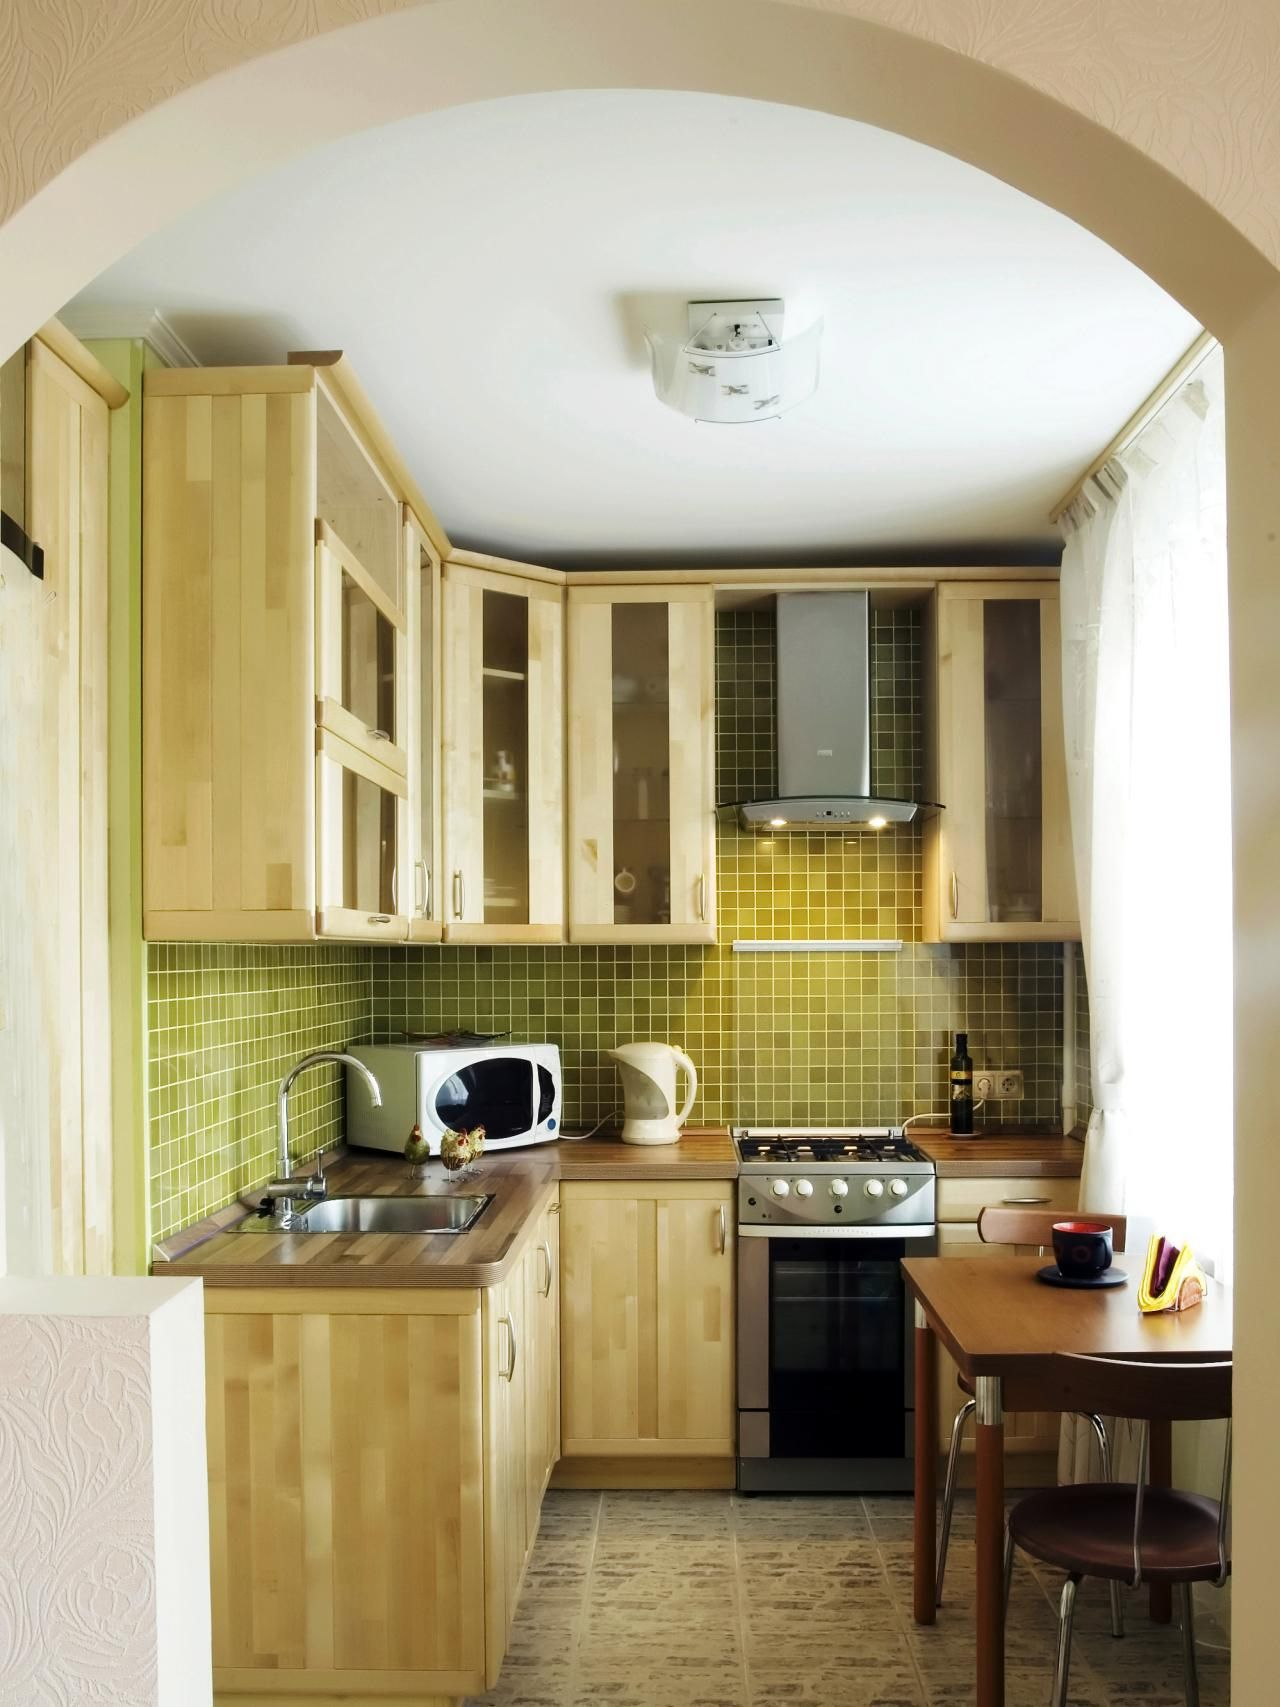 New Small Home Kitchen Design Check More At Httpwwwjnnsysy Custom Kitchen Design Simple Small Inspiration Design